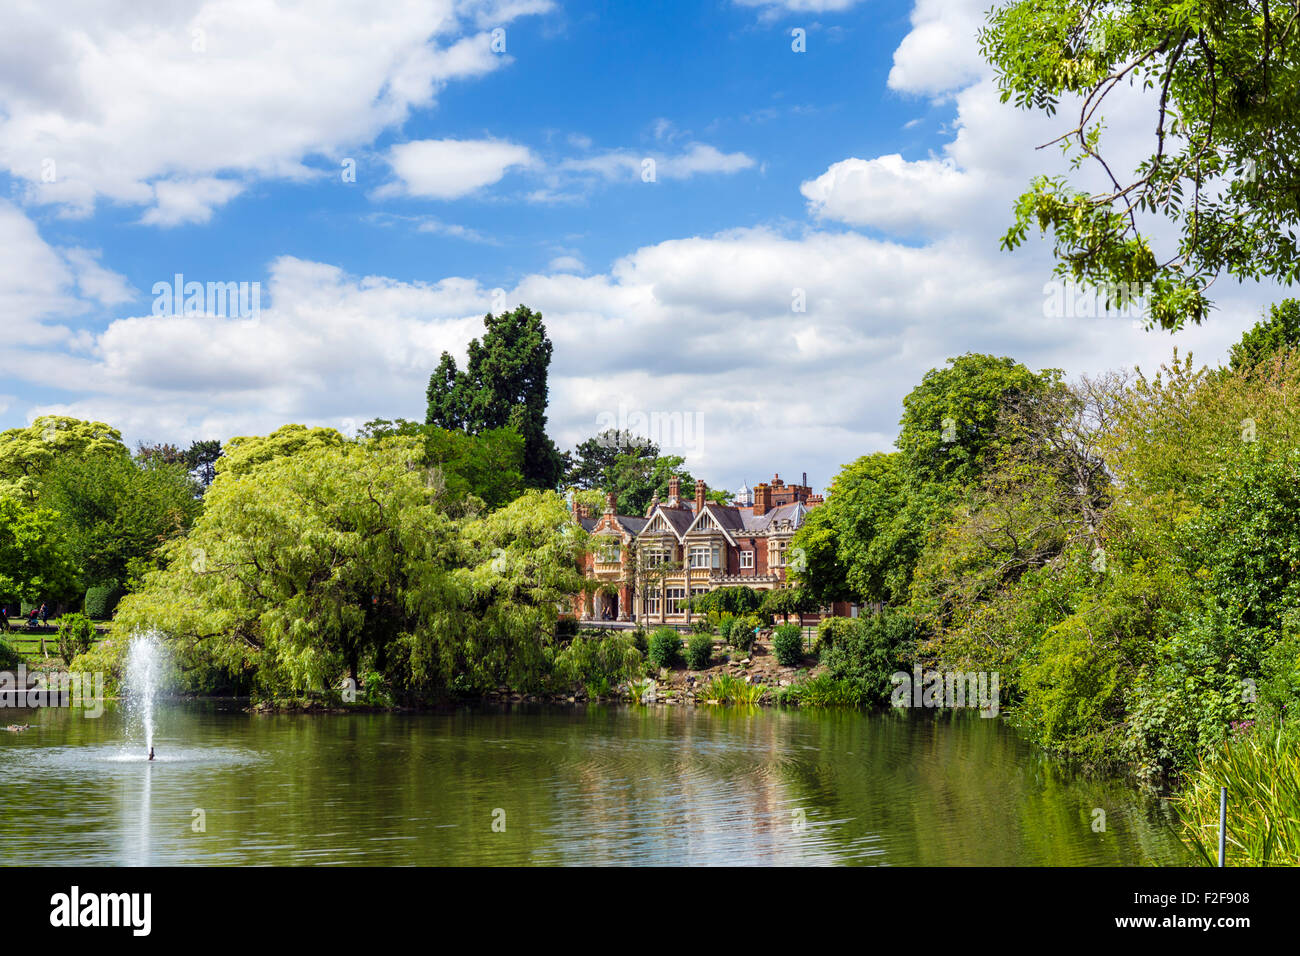 The lake and mansion house at Bletchley Park, Buckinghamshire, England, UK - Stock Image